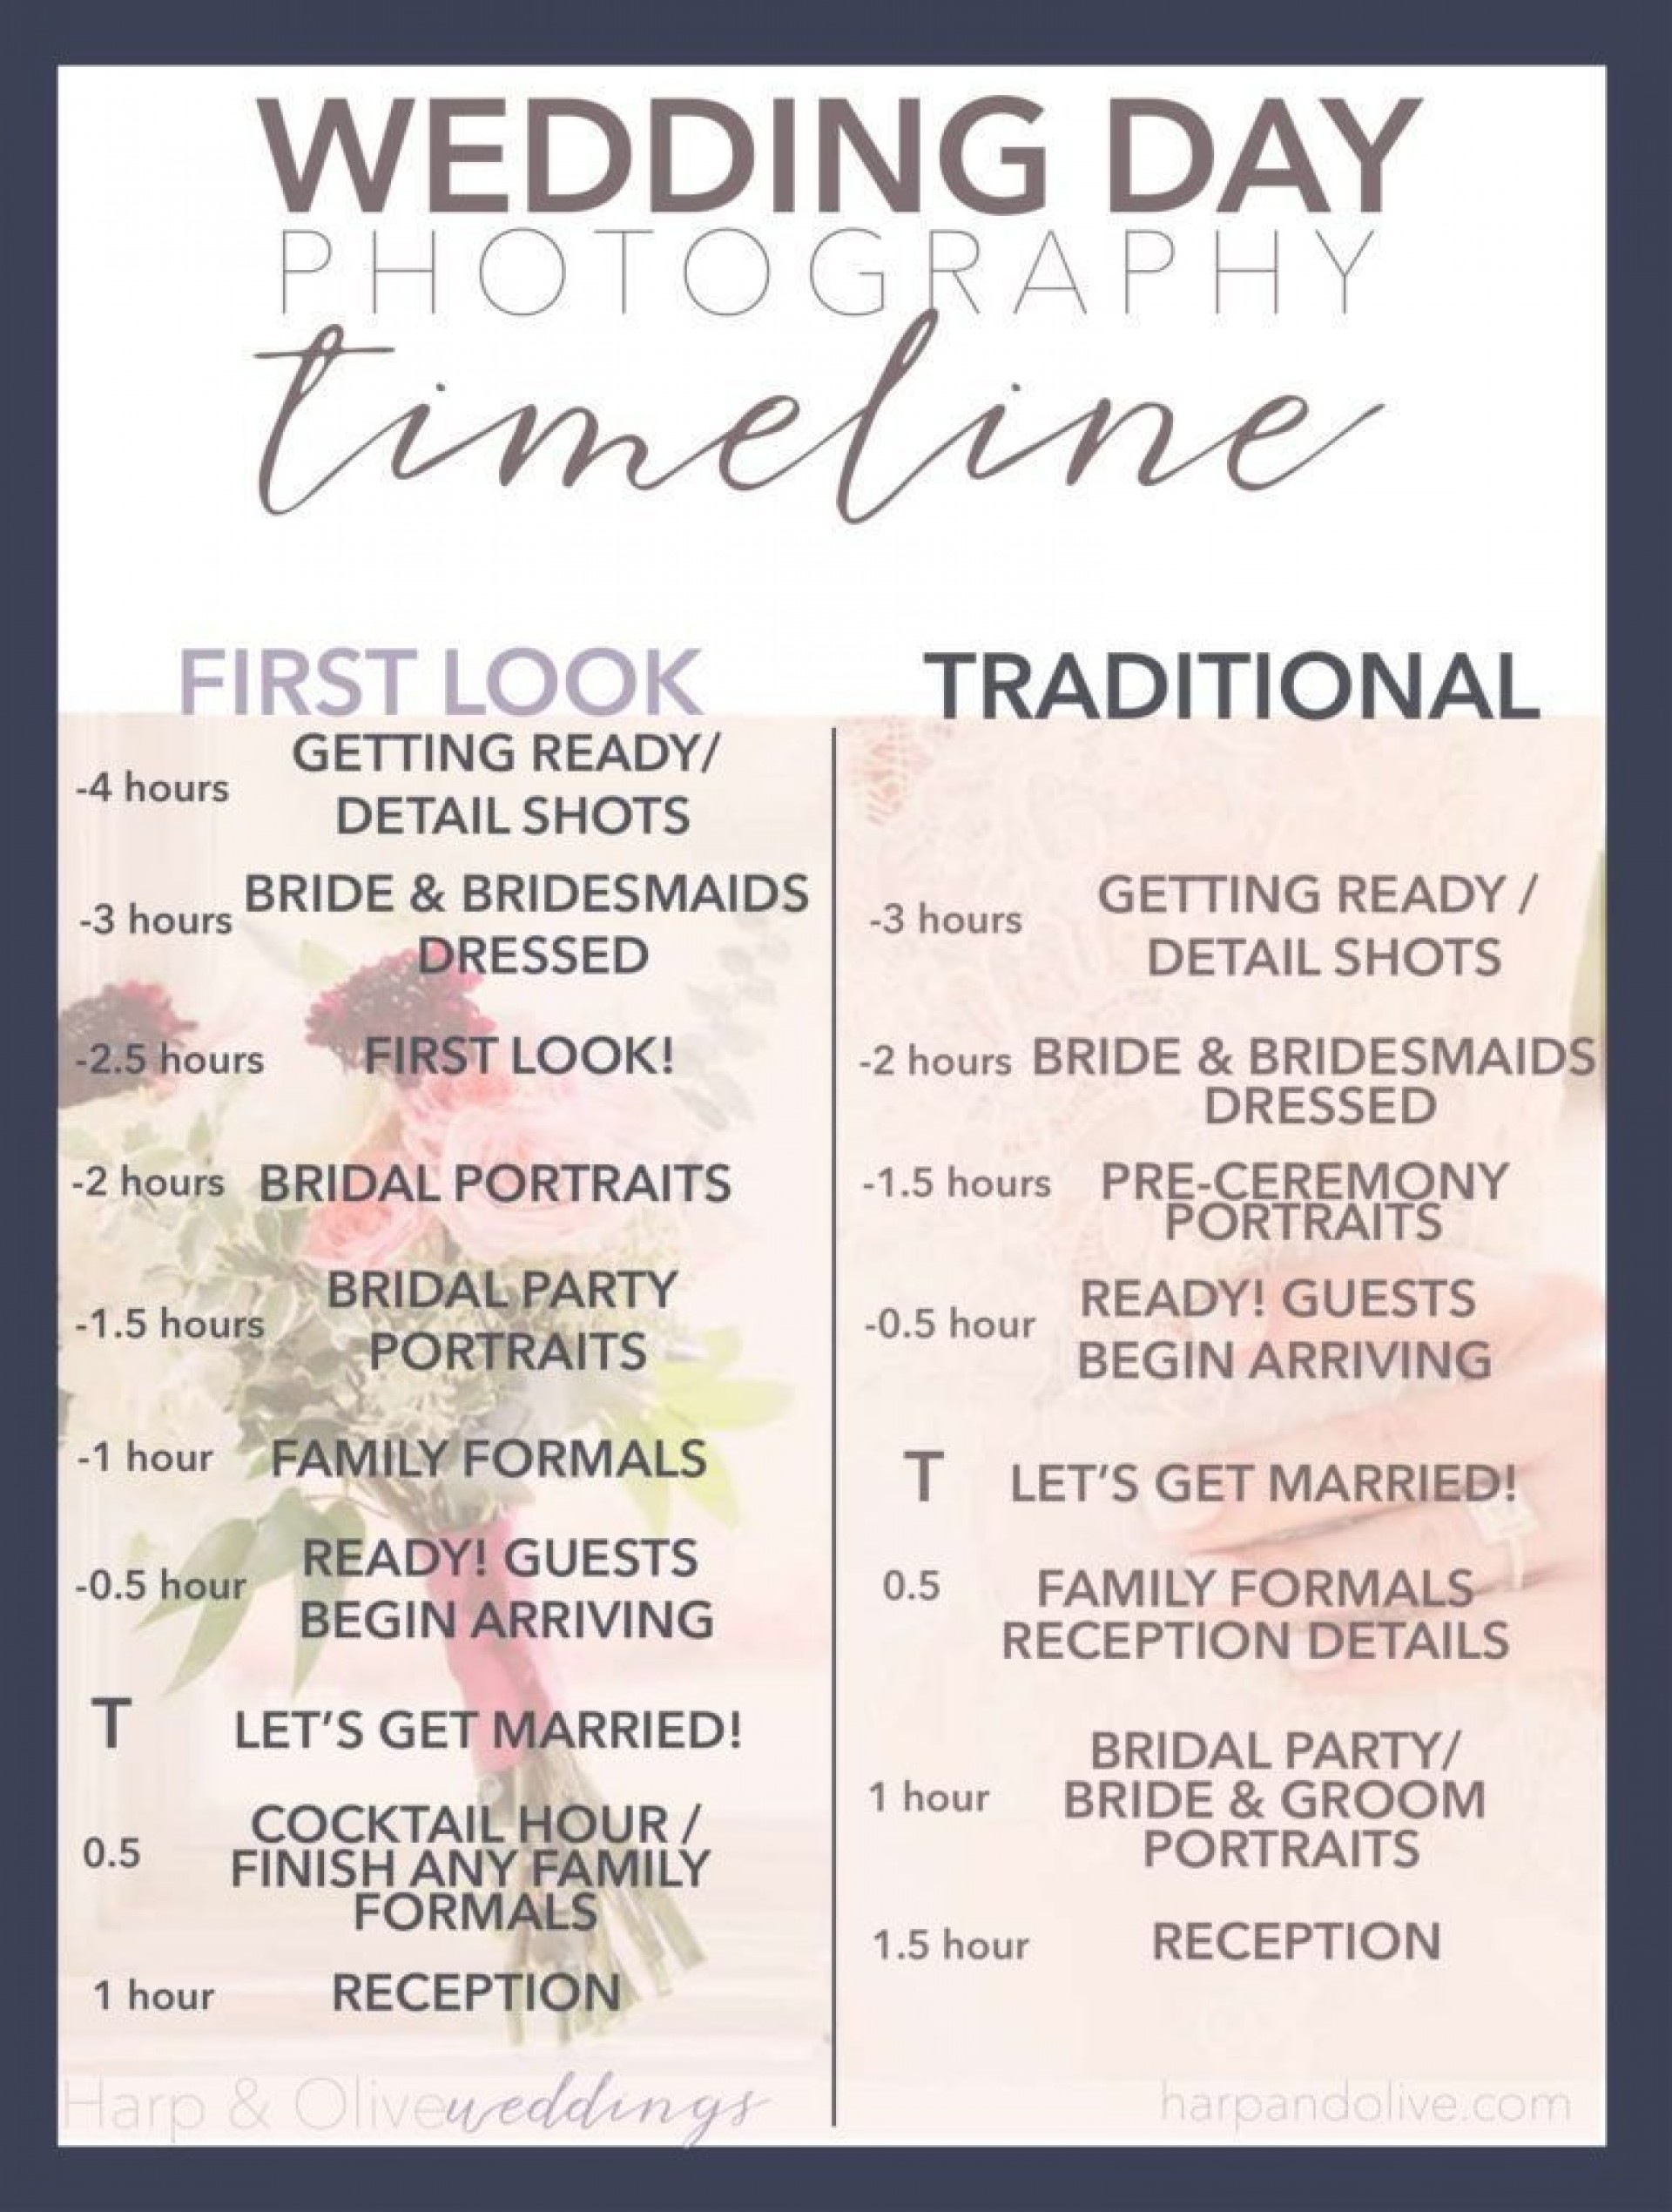 004 Impressive Wedding Timeline For Guest Template Free Example  Download1920